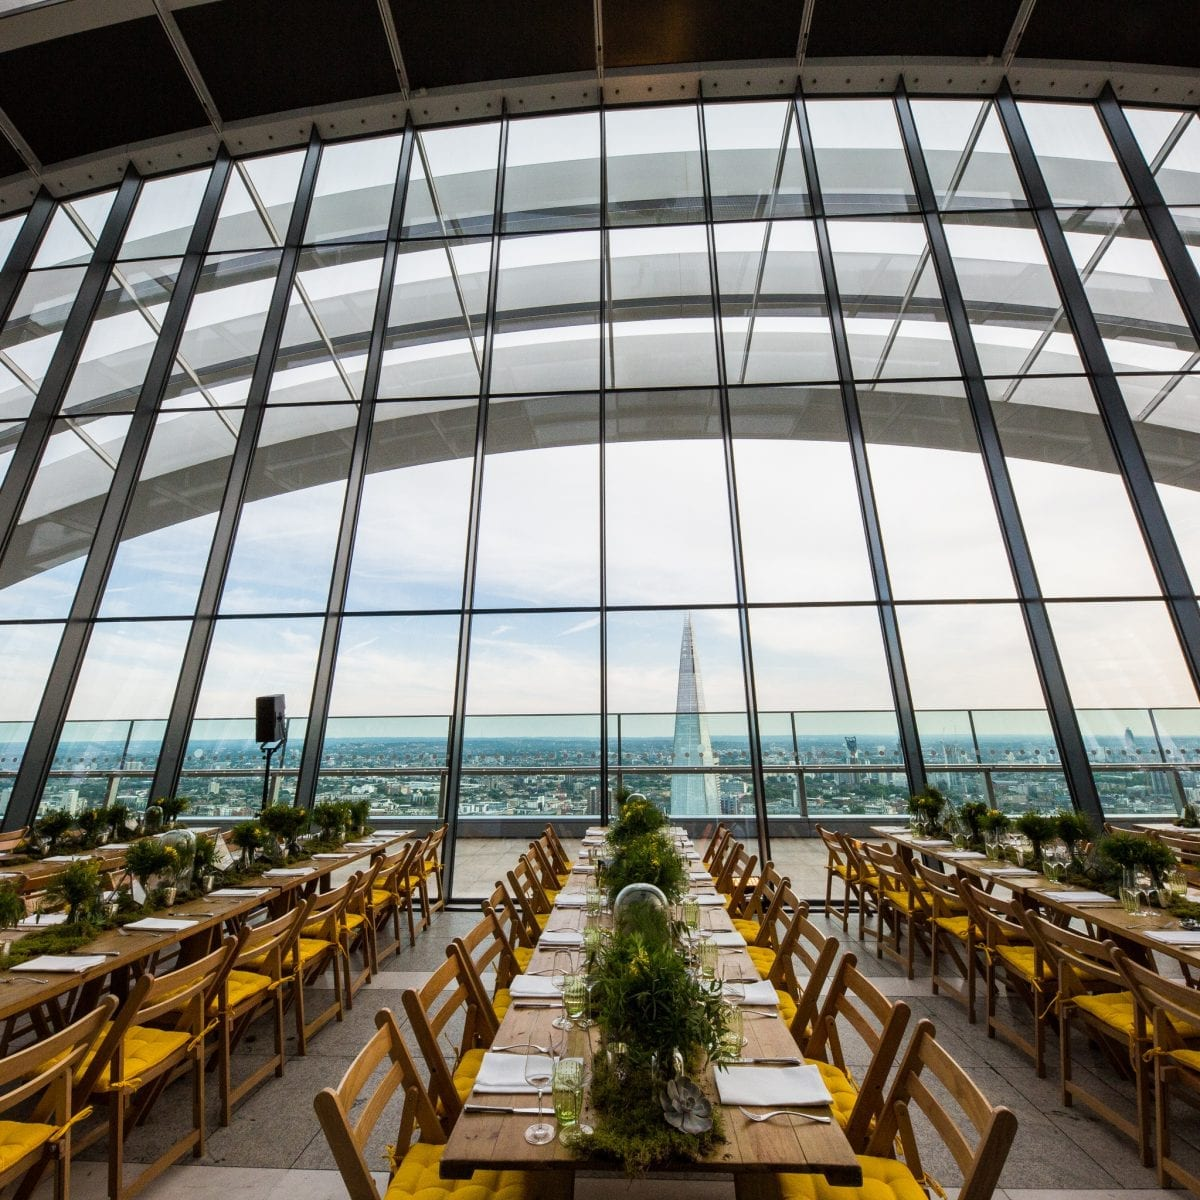 sky garden wooden seating area with shard background